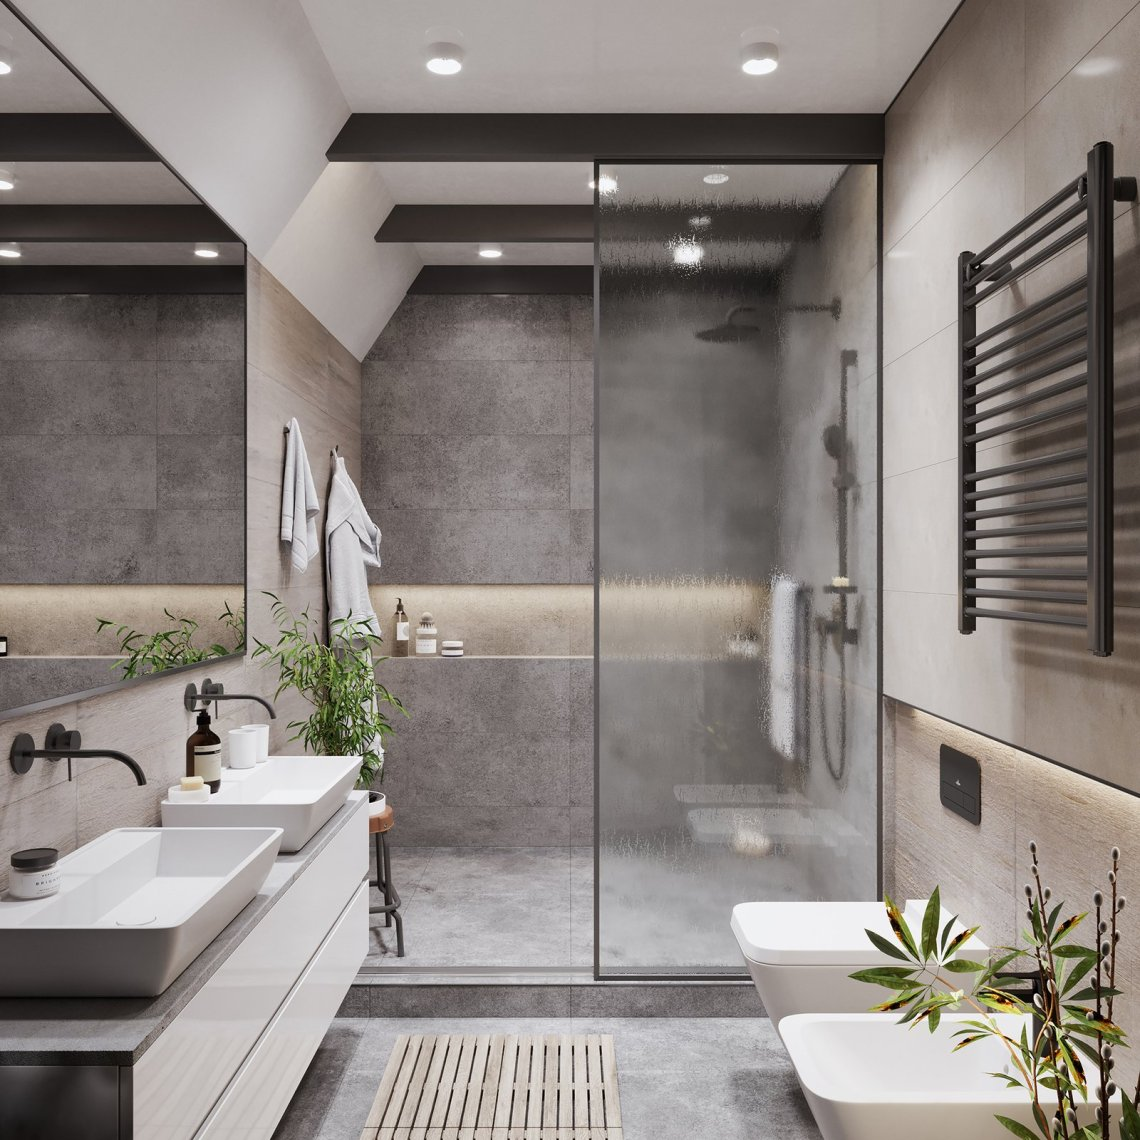 25 Best Modern Bathroom Vanities For Your Home - Dwell